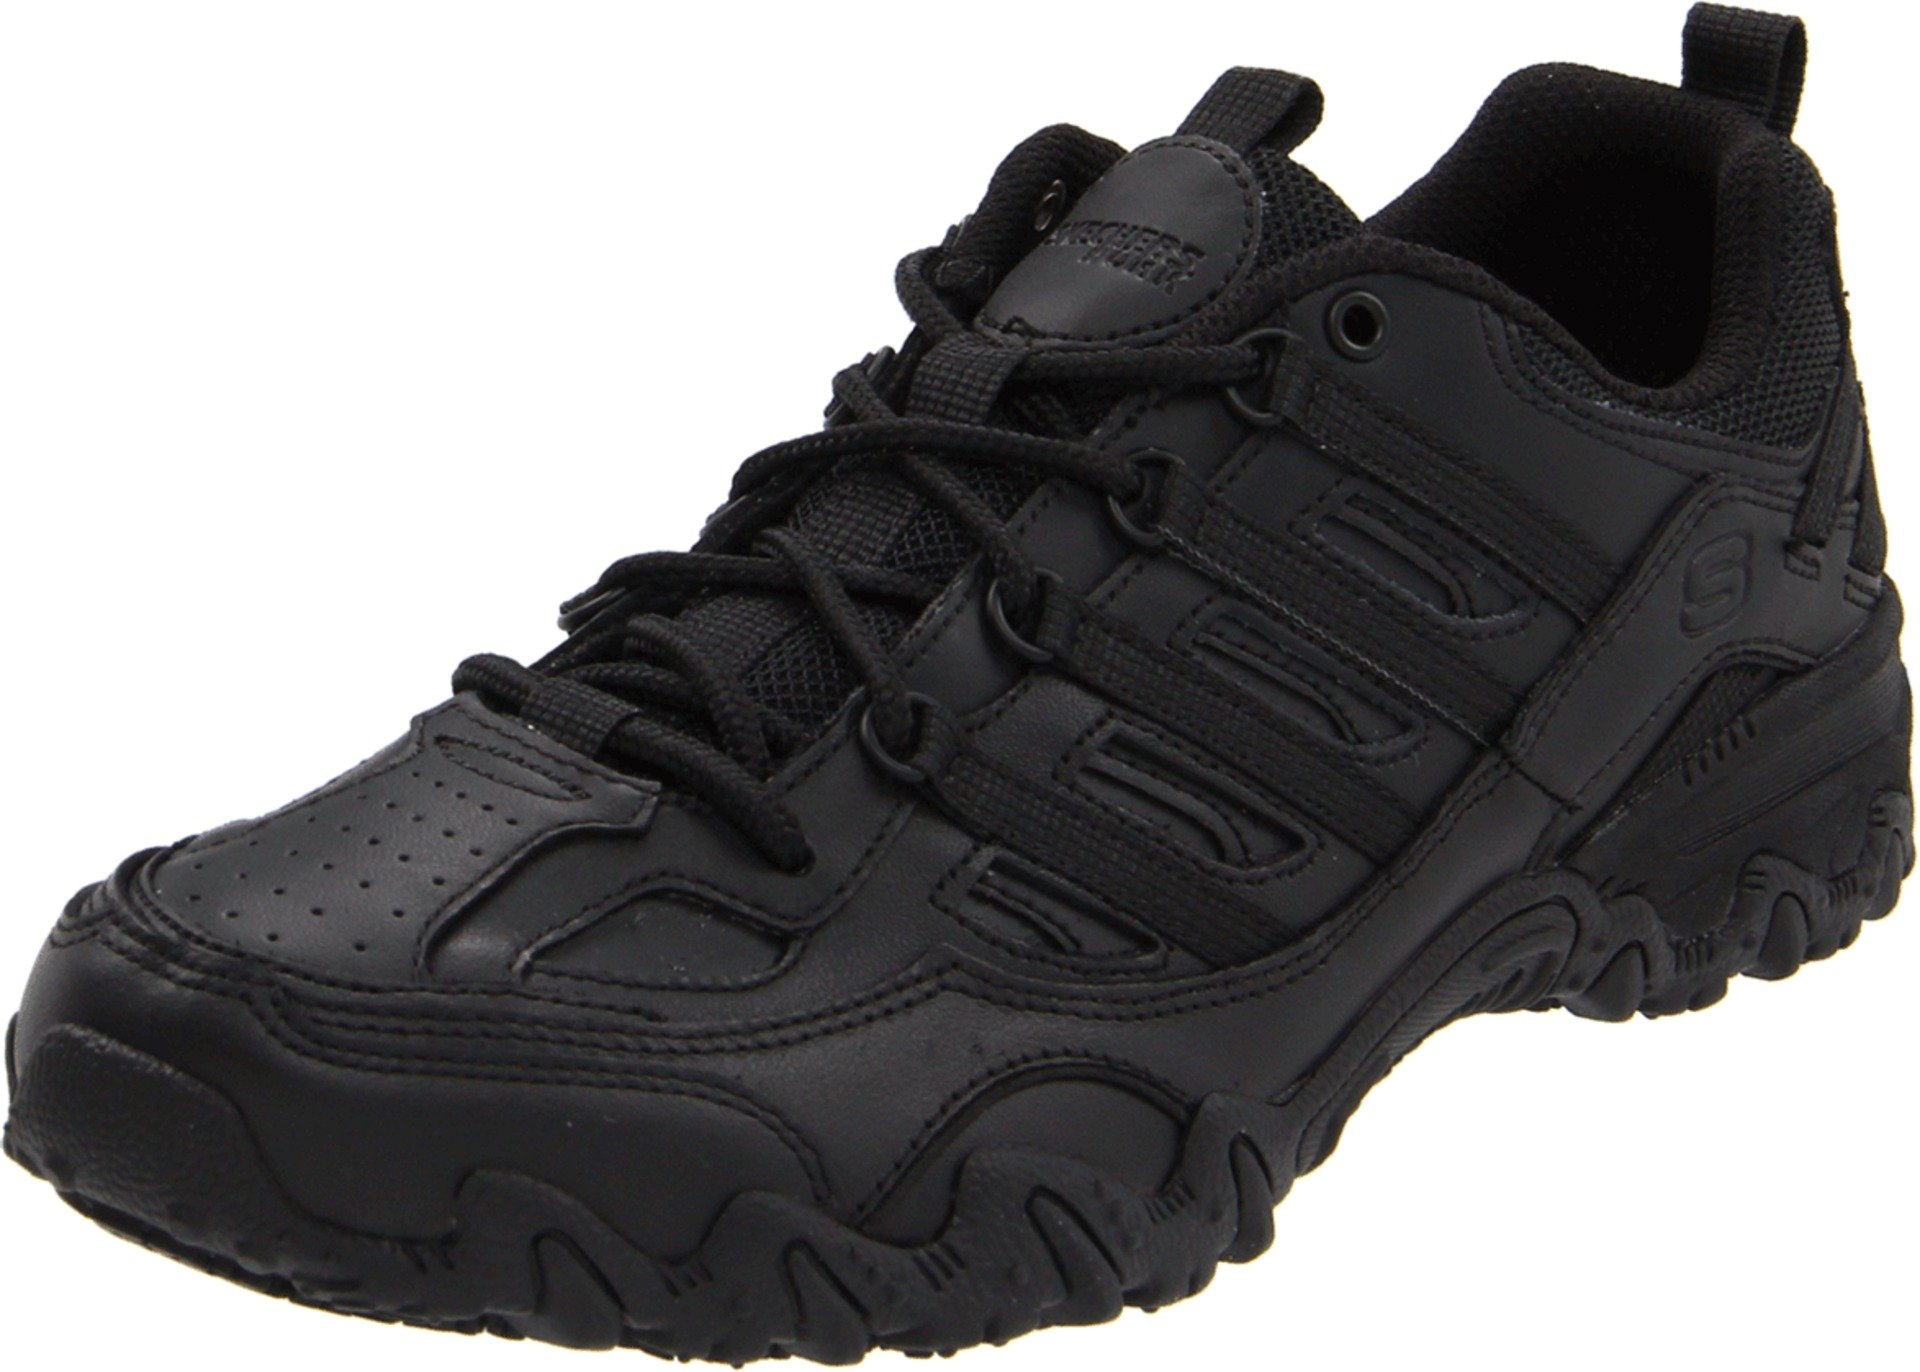 Skechers for Work Women's Compulsions Chant Lace-Up Work Shoe, Black, 10 M US